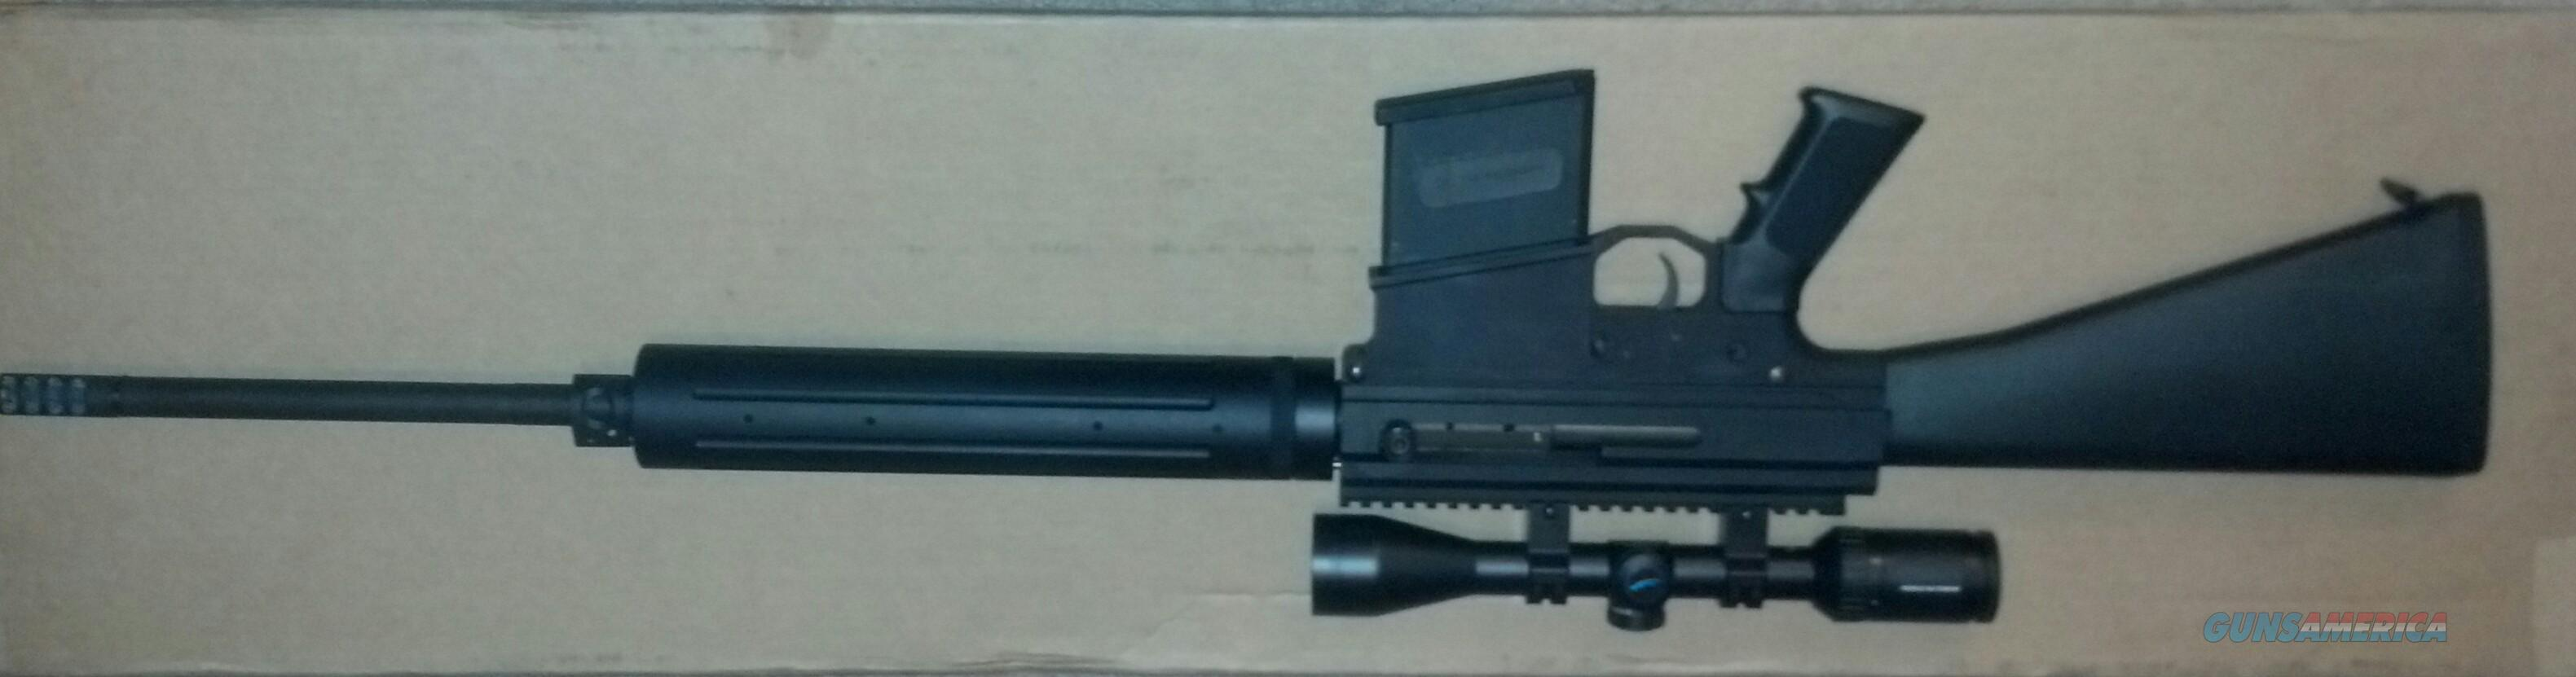 noreen bn36 30 06 ar 10 w scope and ammo for sale